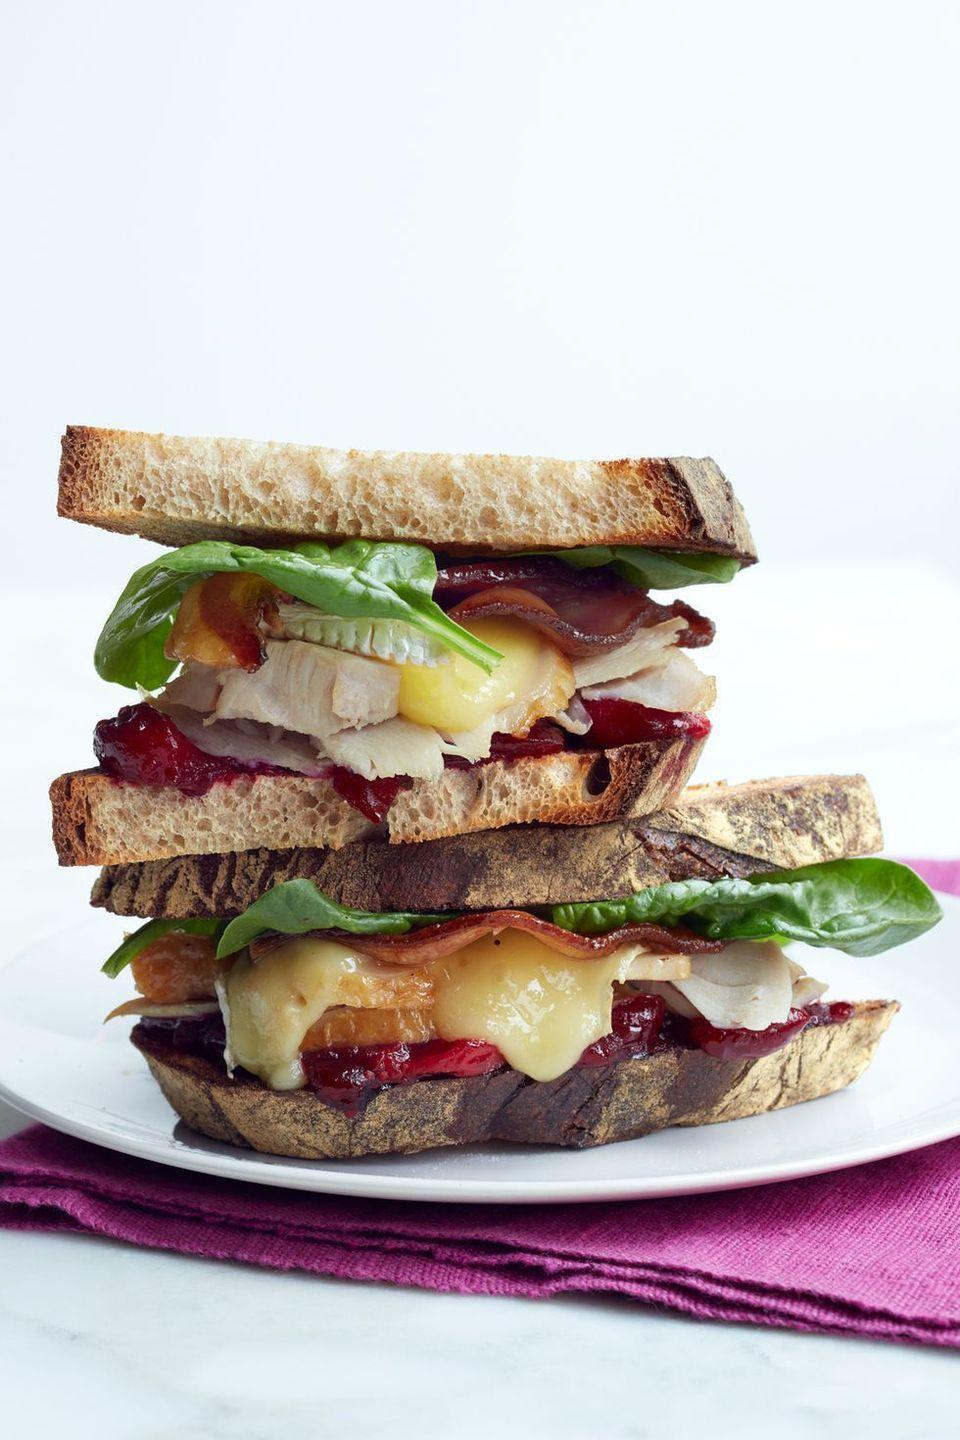 """<p>Bust out the panini press to make the ultimate post-Thanksgiving sandwich, which includes leftover turkey, cranberry sauce, and cheese. </p><p><em><a href=""""https://www.womansday.com/food-recipes/food-drinks/recipes/a12459/turkey-brie-bacon-cranberry-sandwich-recipe-wdy1113/"""" rel=""""nofollow noopener"""" target=""""_blank"""" data-ylk=""""slk:Get the recipe from Woman's Day »"""" class=""""link rapid-noclick-resp"""">Get the recipe from Woman's Day »</a></em></p>"""